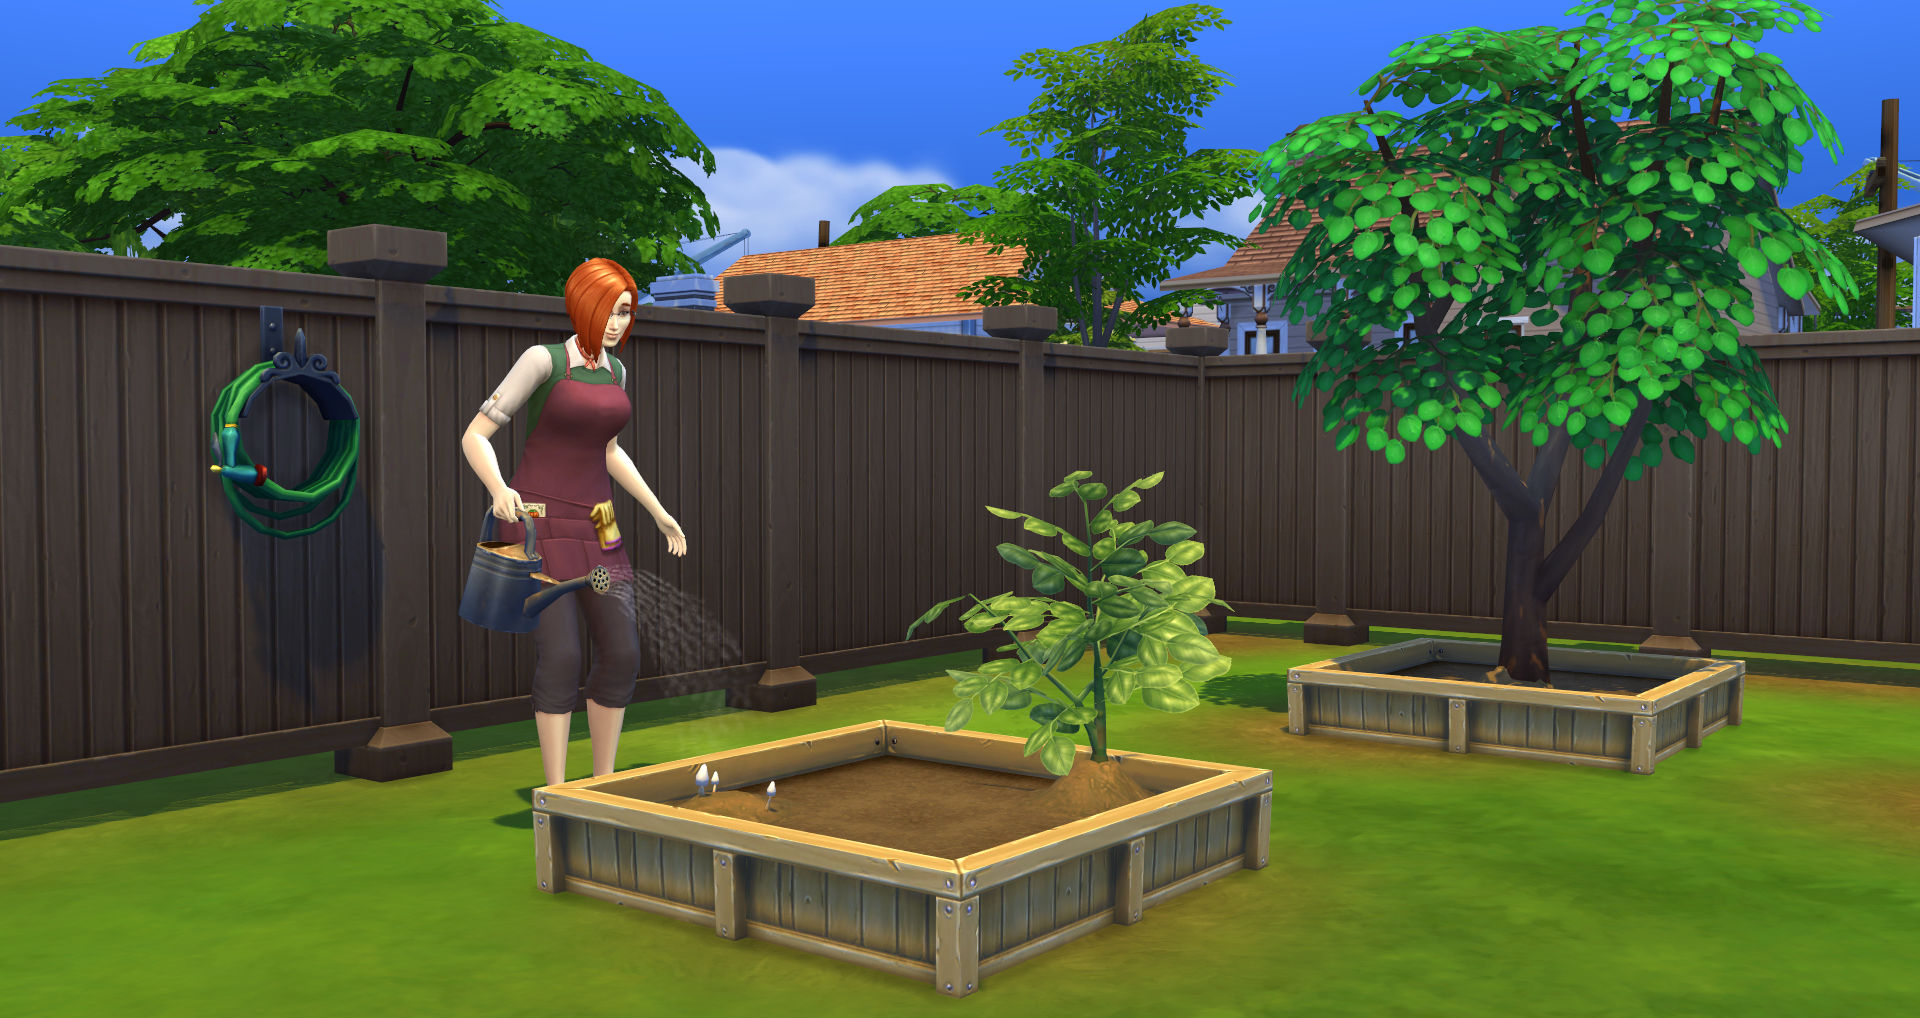 Gardening (The Sims 4)   The Sims Wiki   FANDOM powered by Wikia